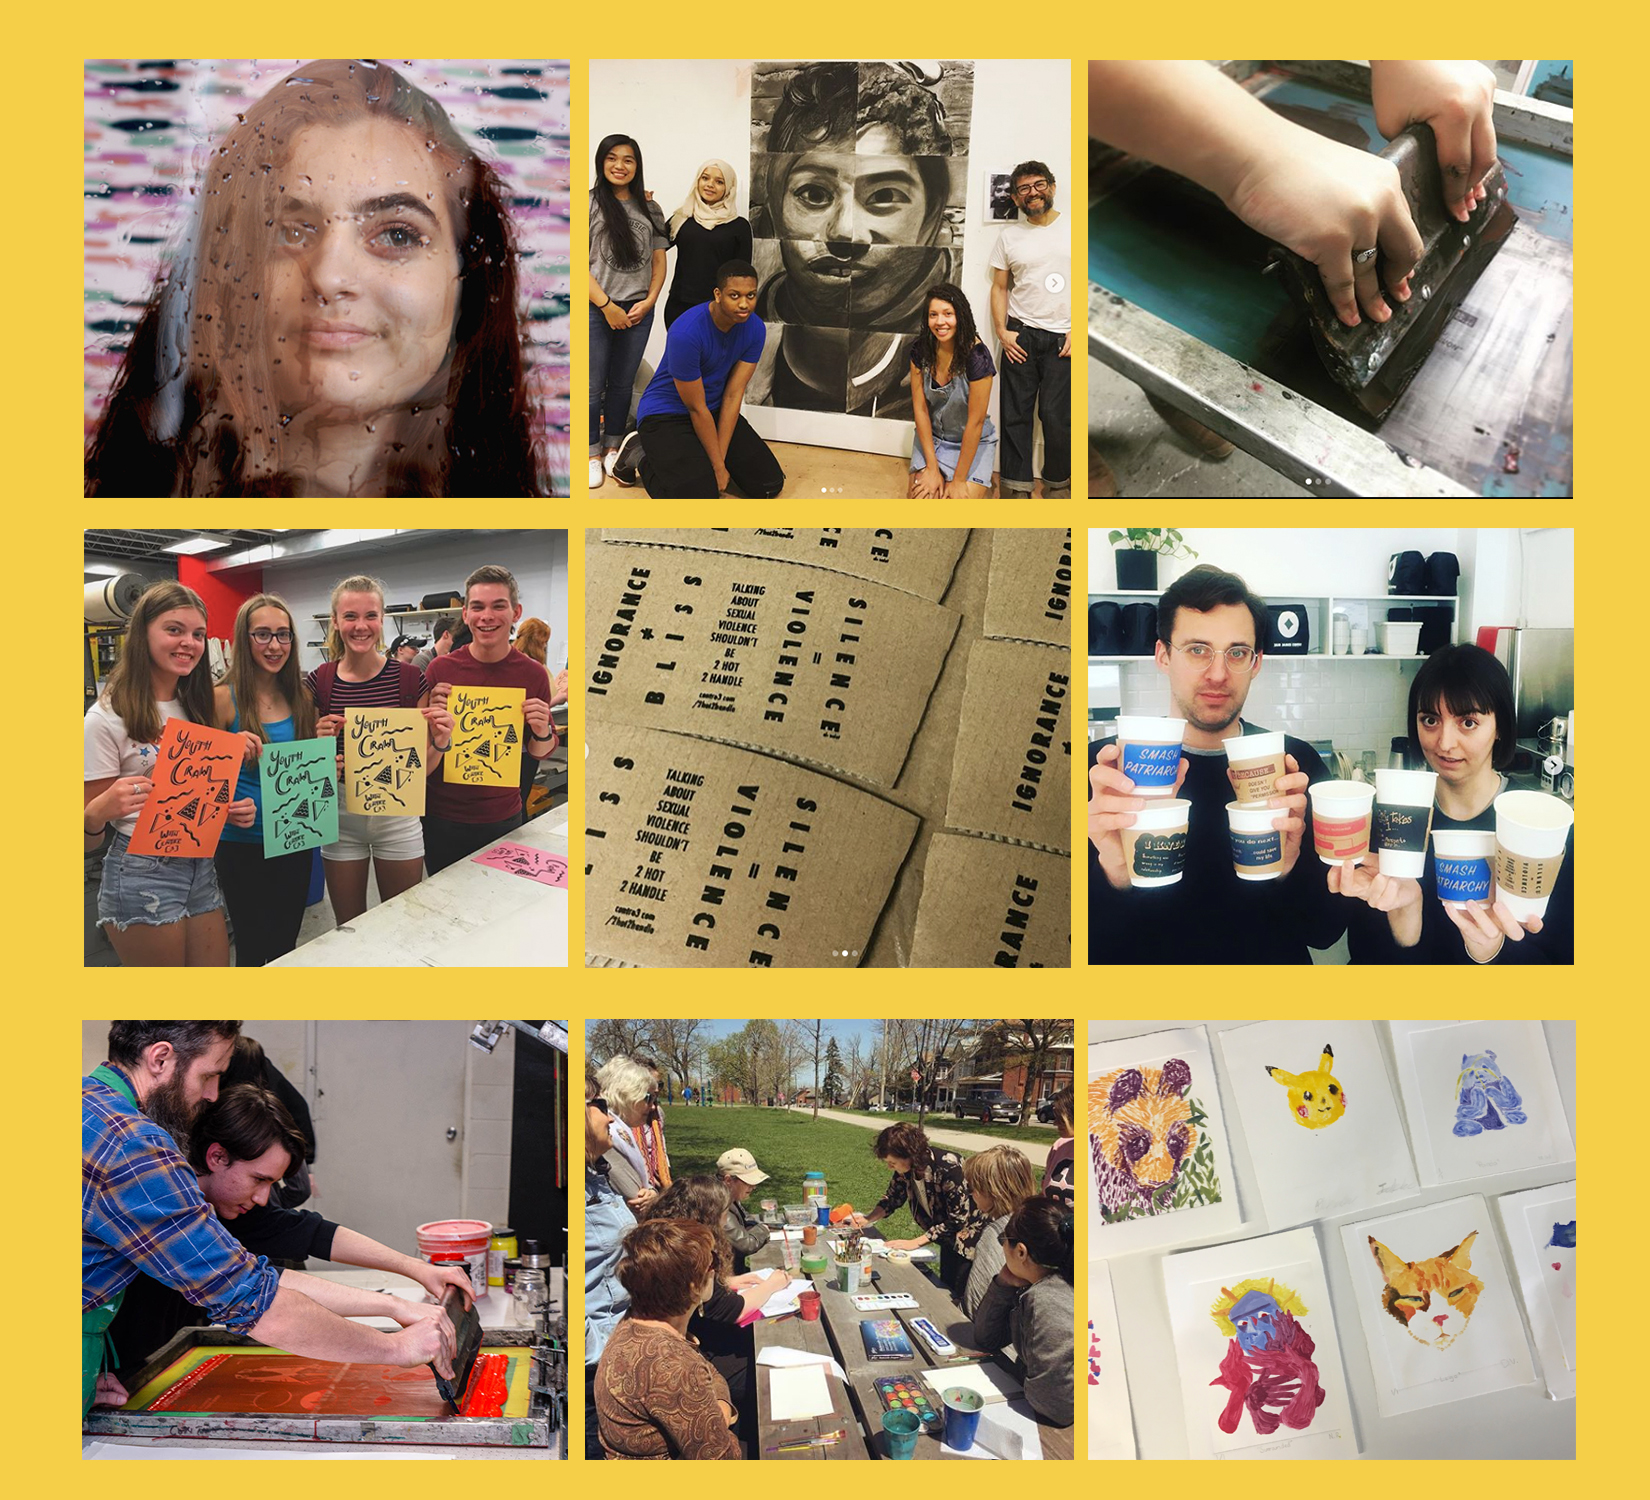 2018-2019 Art Education & Community Arts Exhibition, Enriching the Quality of Life in the Hamilton Community through the Arts